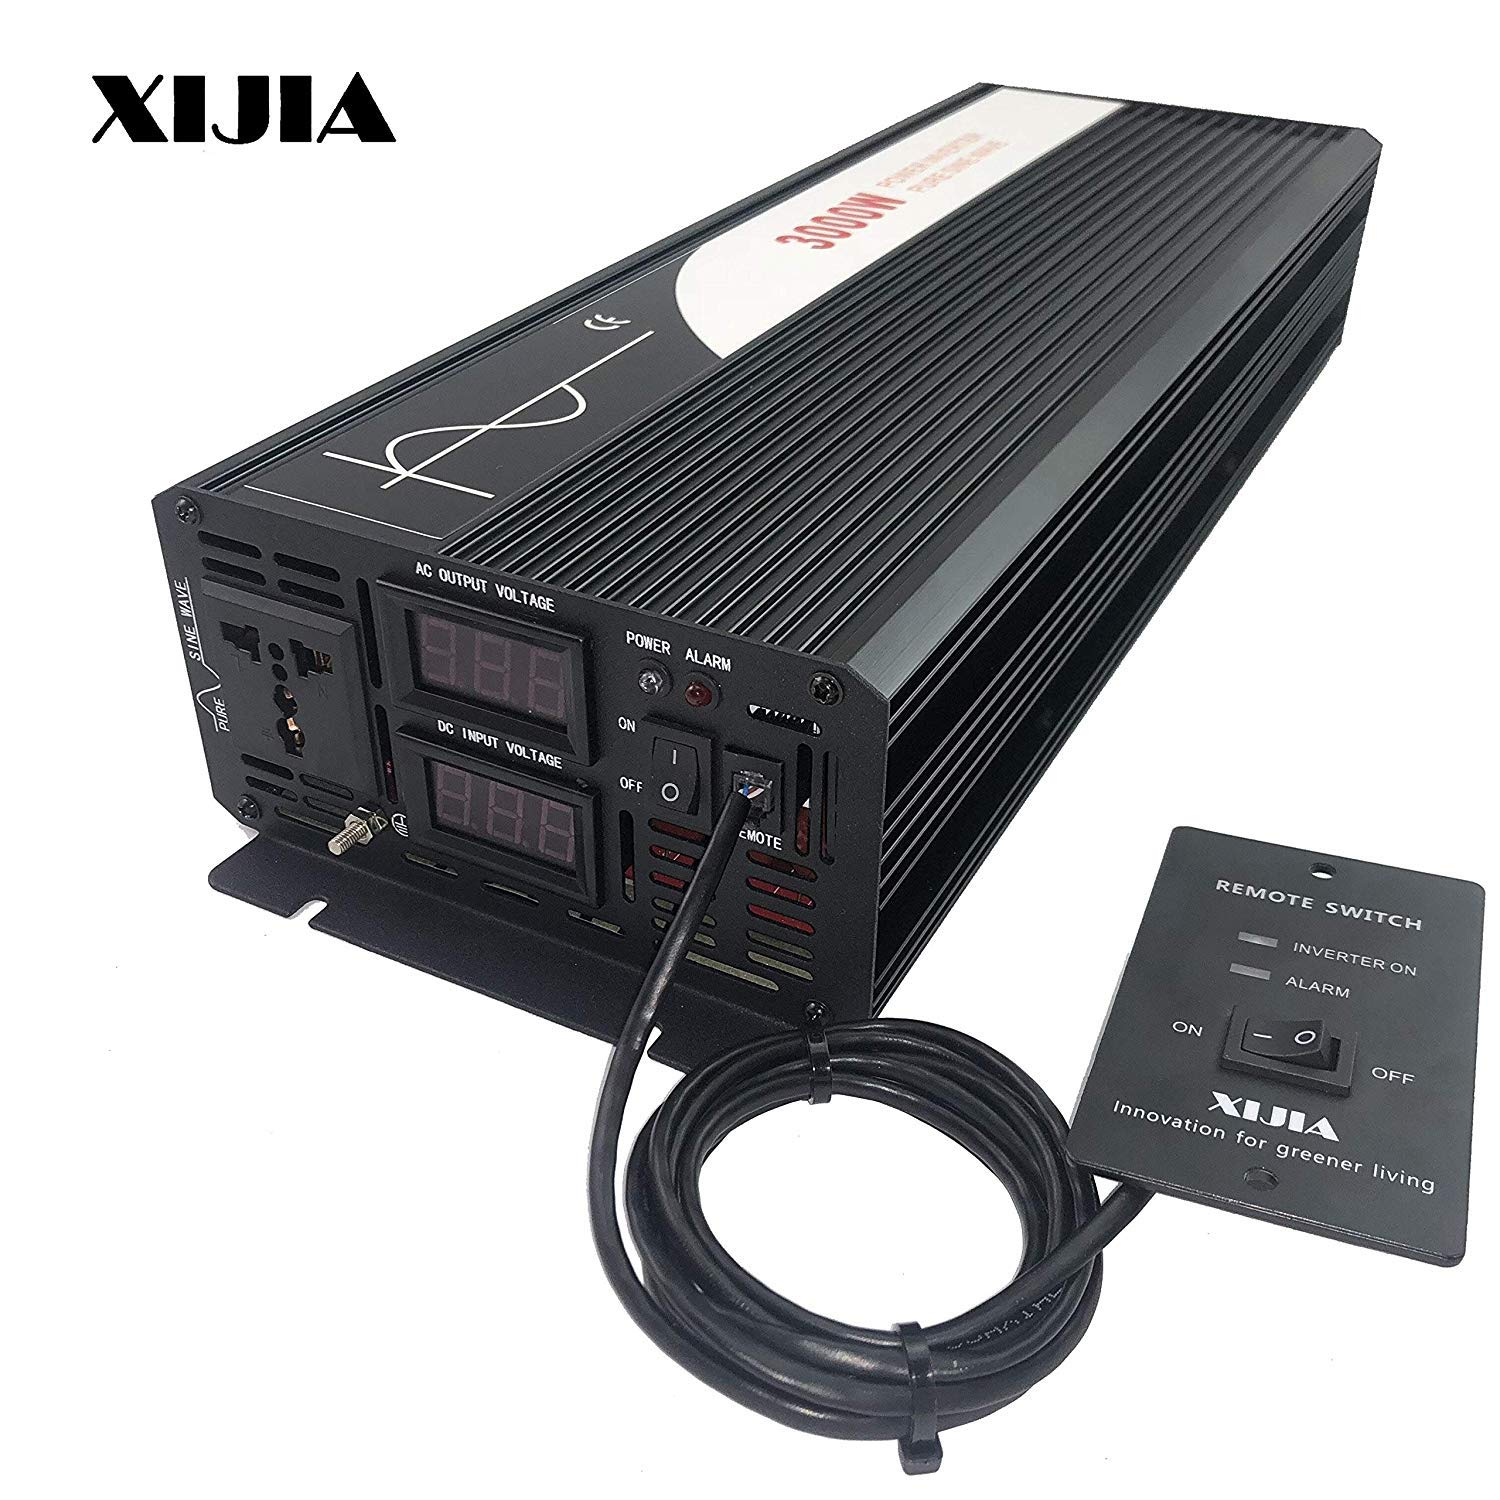 XIJIA 3000W (Peak 6000W) Pure Sine Wave Power Inverter DC 12V 24V 48V to AC 120V 60HZ Solar Converter for Home Use car Remote Control (DC 12V to AC 120V)